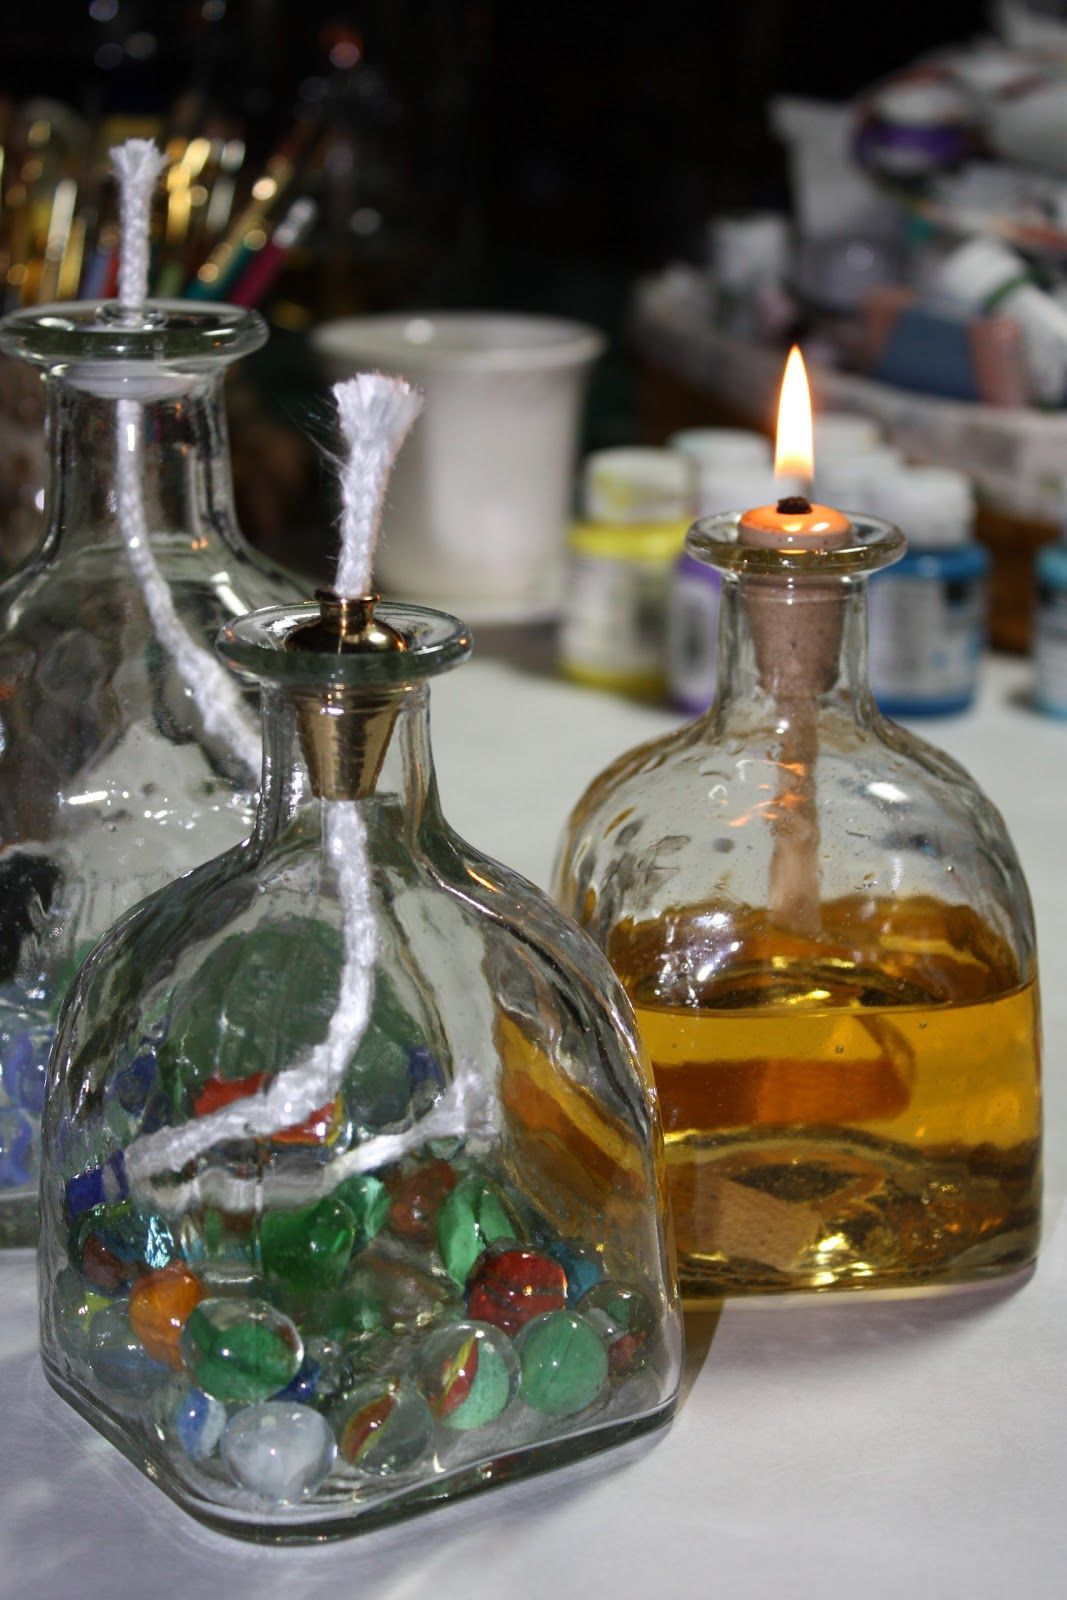 Repurposed some Patron bottles into oil lamps